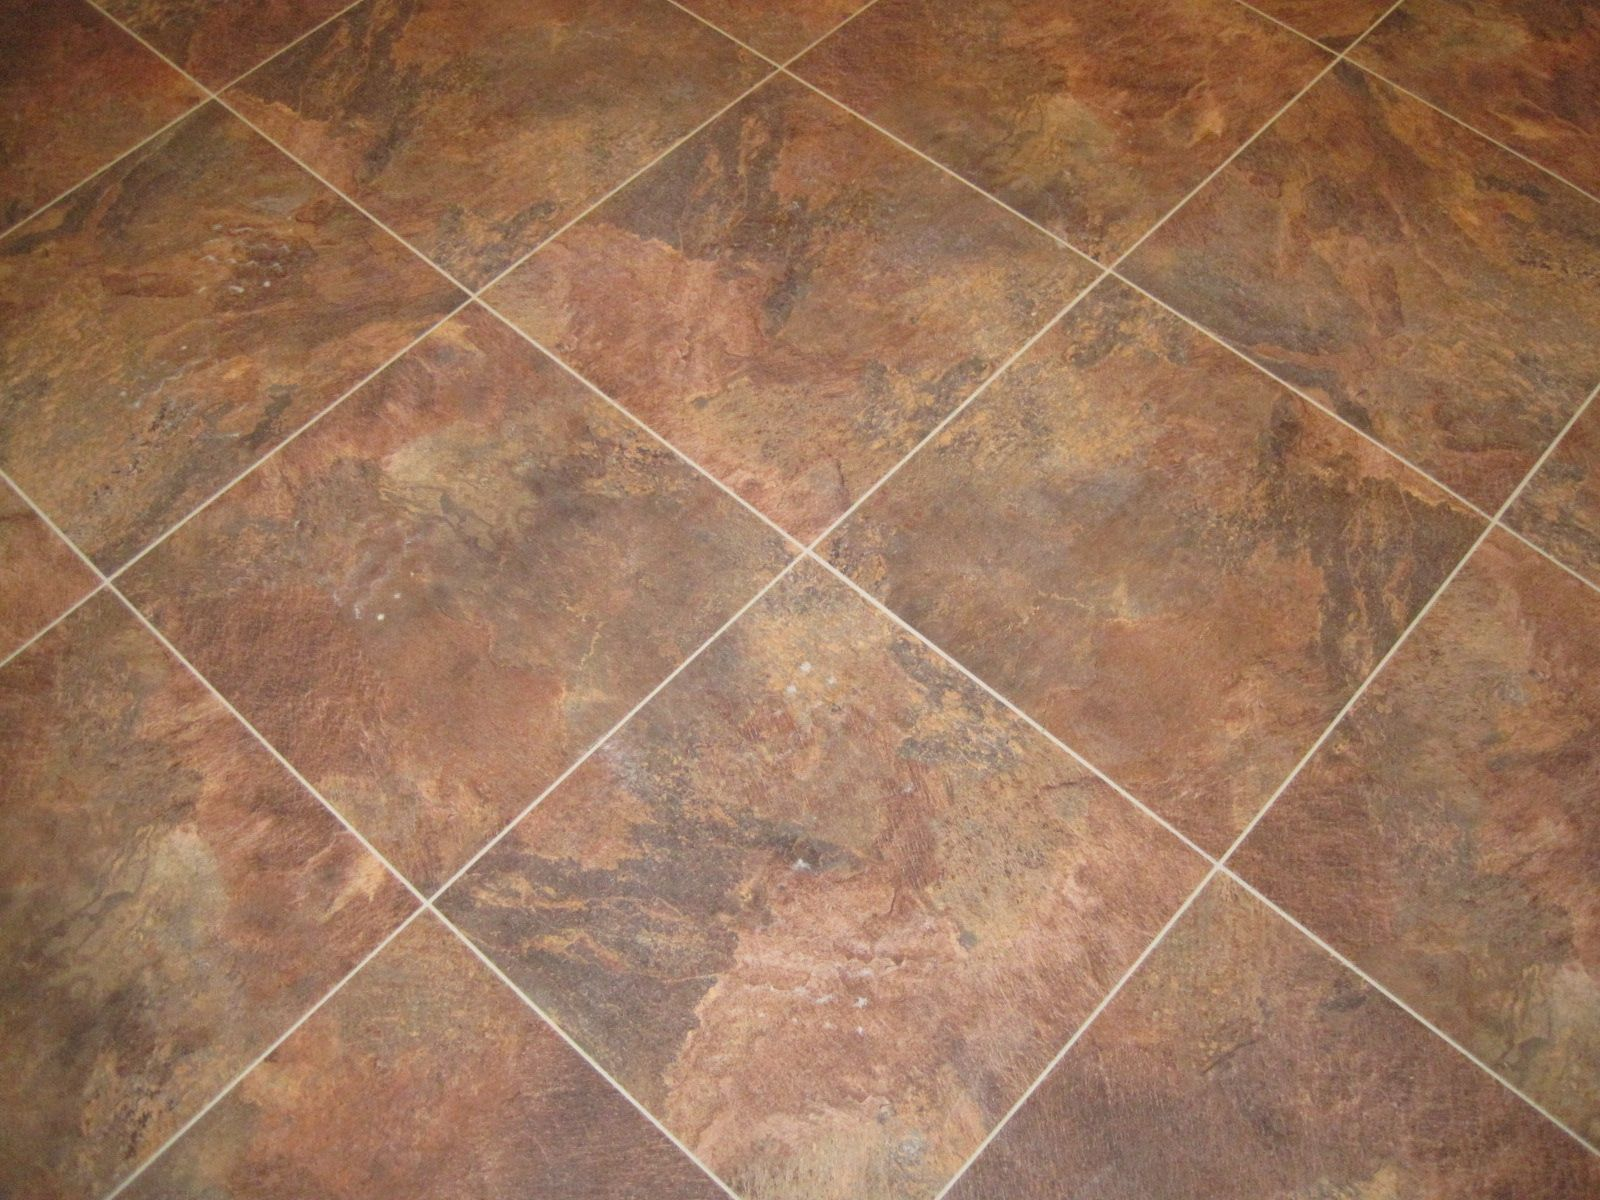 Pictures Of Tile Floors | The Kitchen Flooring, Large Vinyl Tiles With  Stone Powder Embedded